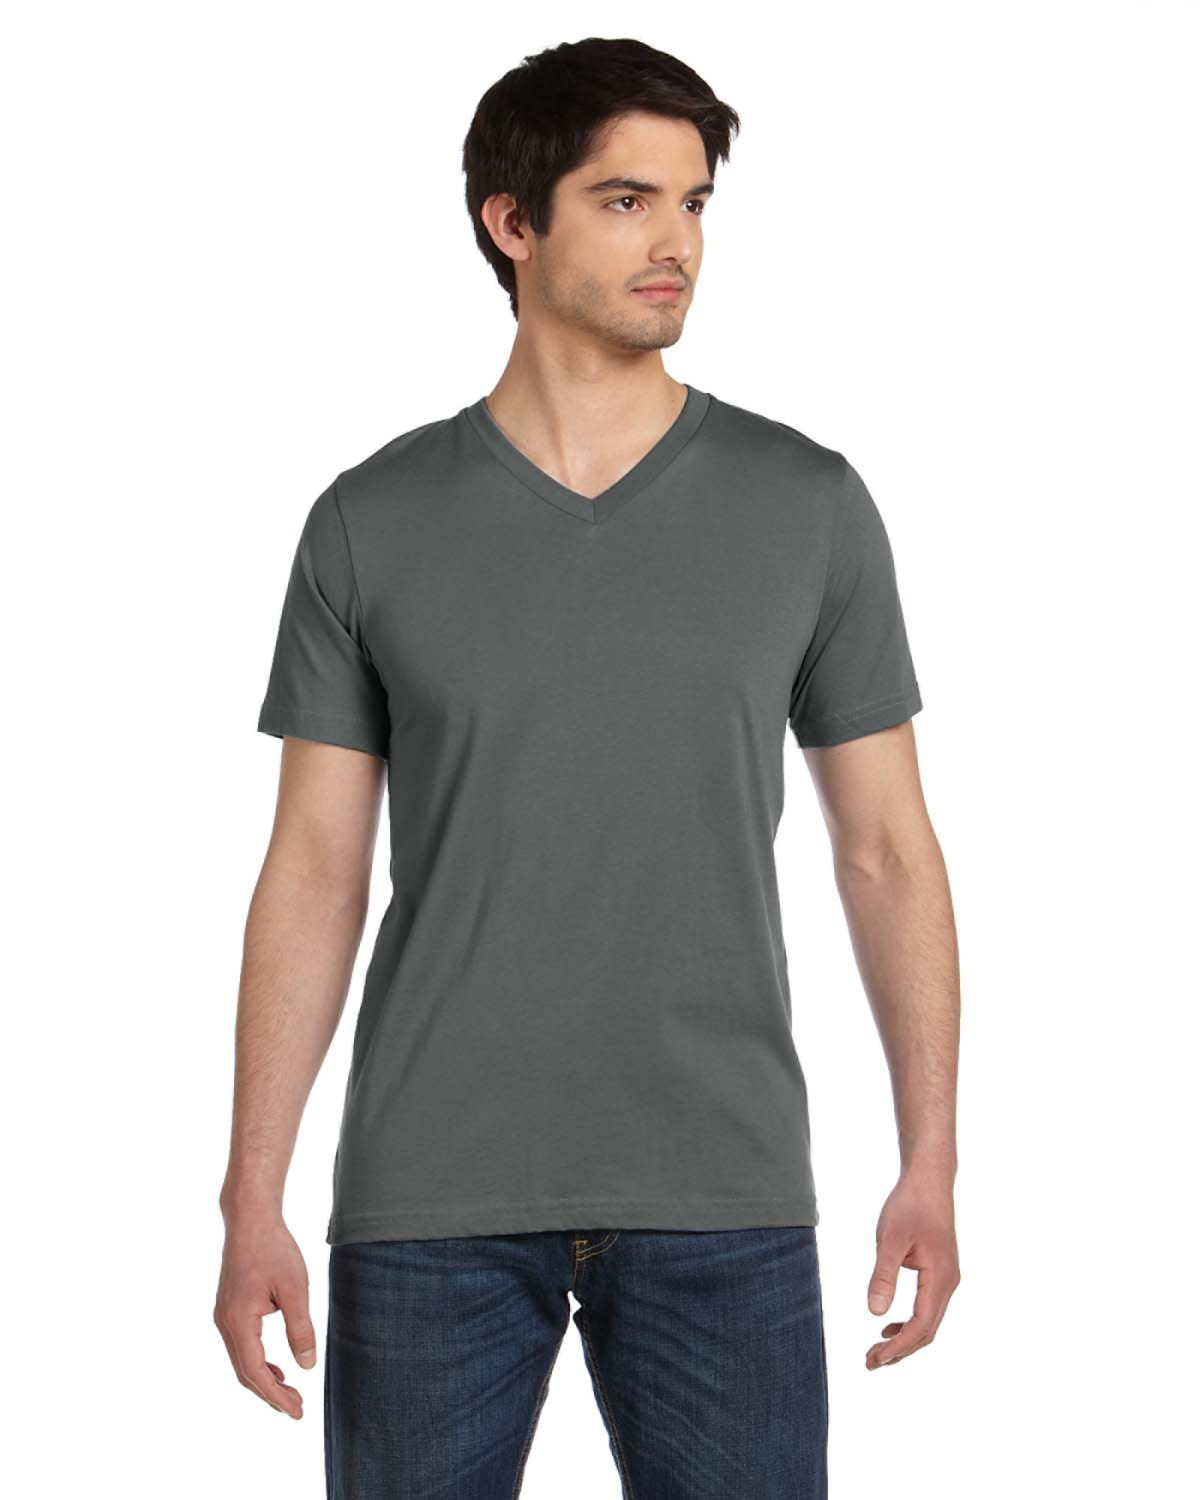 Bella + Canvas - 3005U Unisex Made in the USA Jersey Short-Sleeve V-Neck T-Shirt